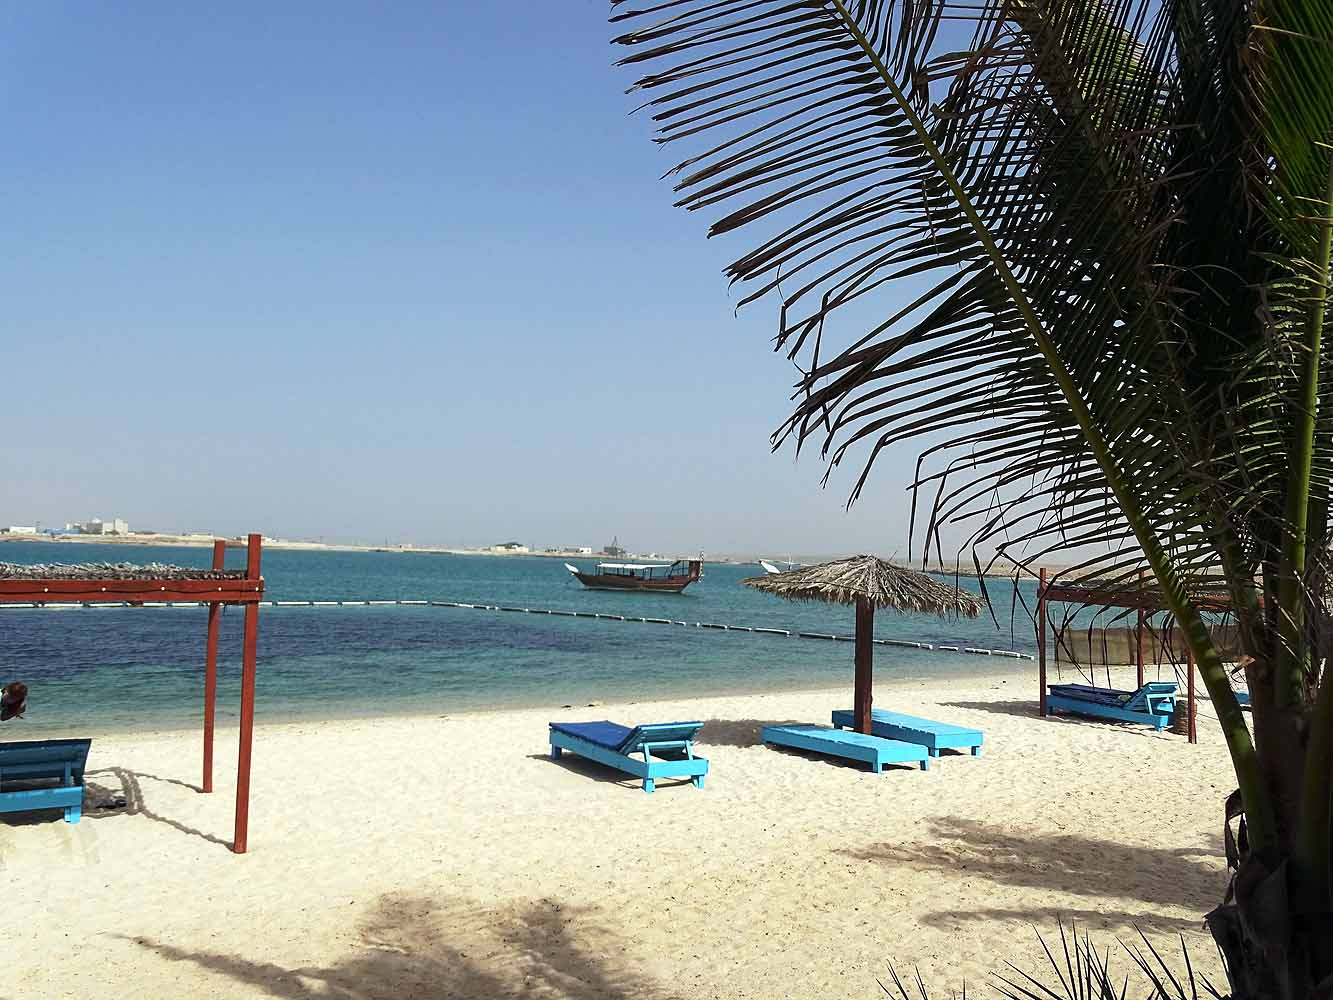 Ras al Hadd - Turtle Beach Resort